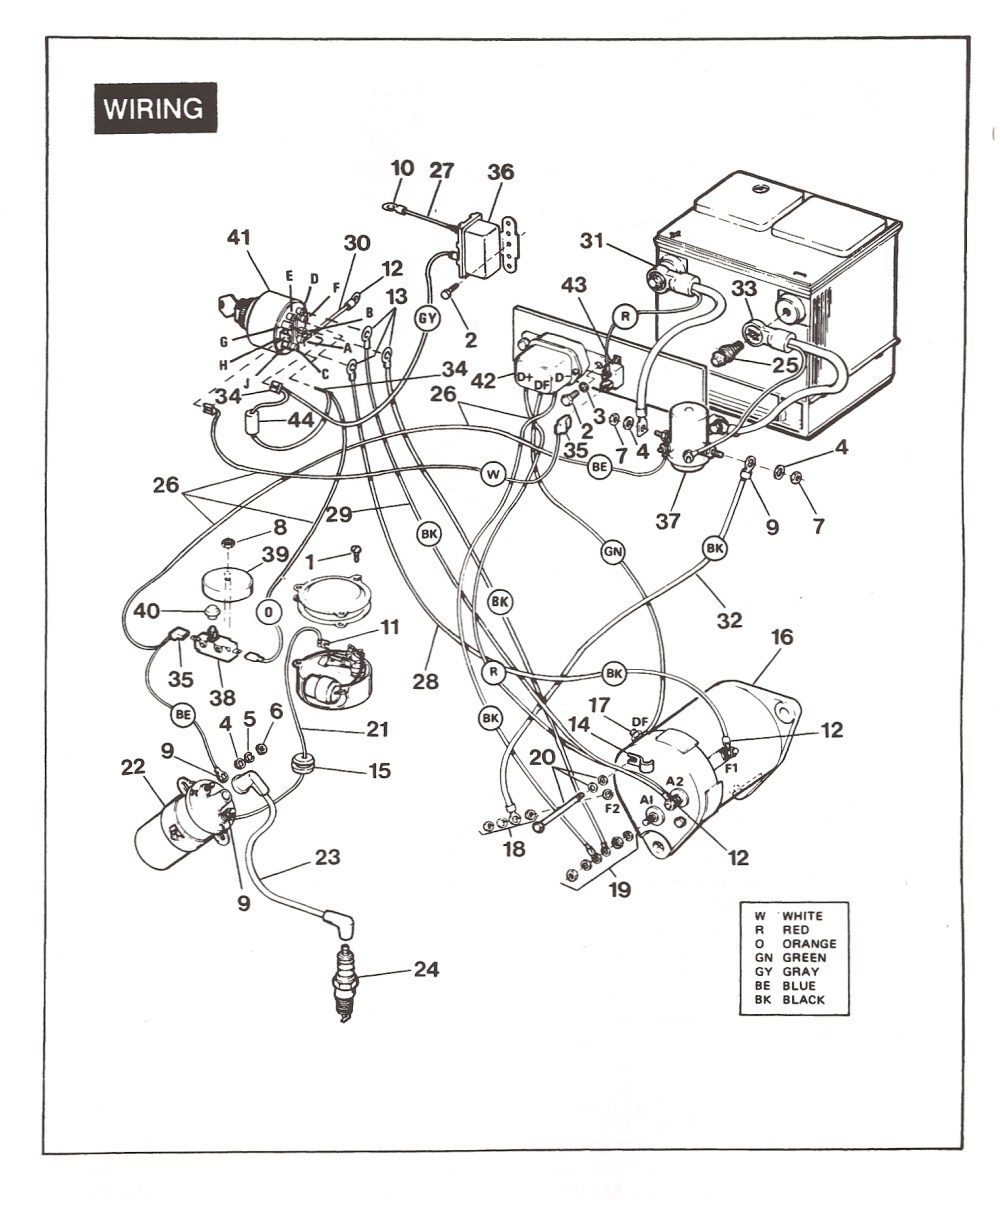 medium resolution of columbia par car engine fix or sell good crank page 2